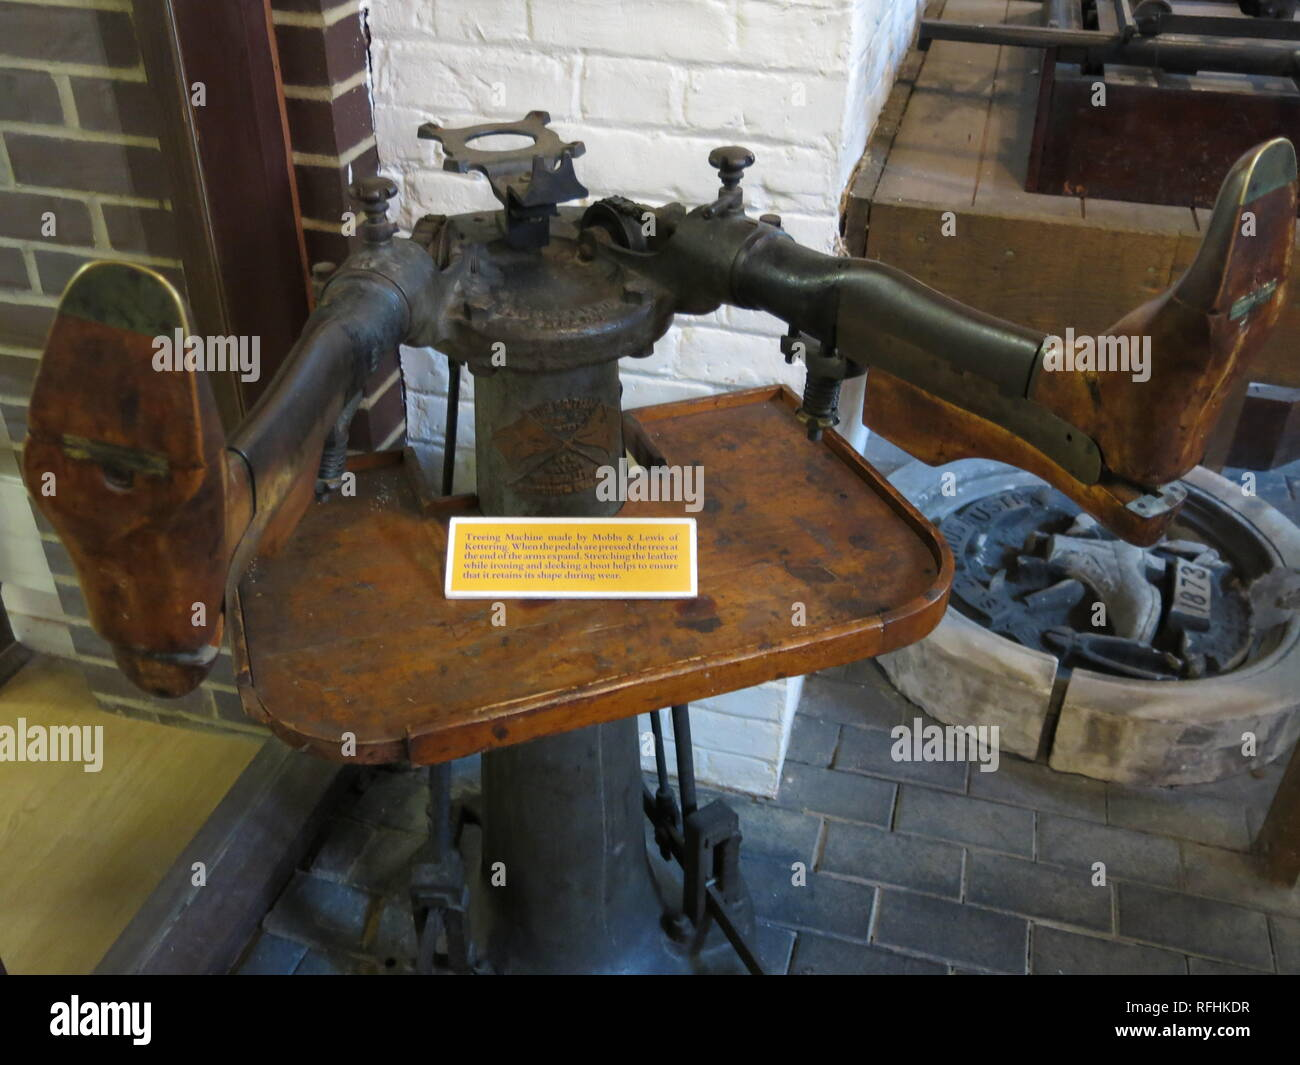 Photo of a treeing machine made by Mobbs & Lewis for stretching leather in the boot and shoe industry; display at the Manor House Museum, Kettering. - Stock Image